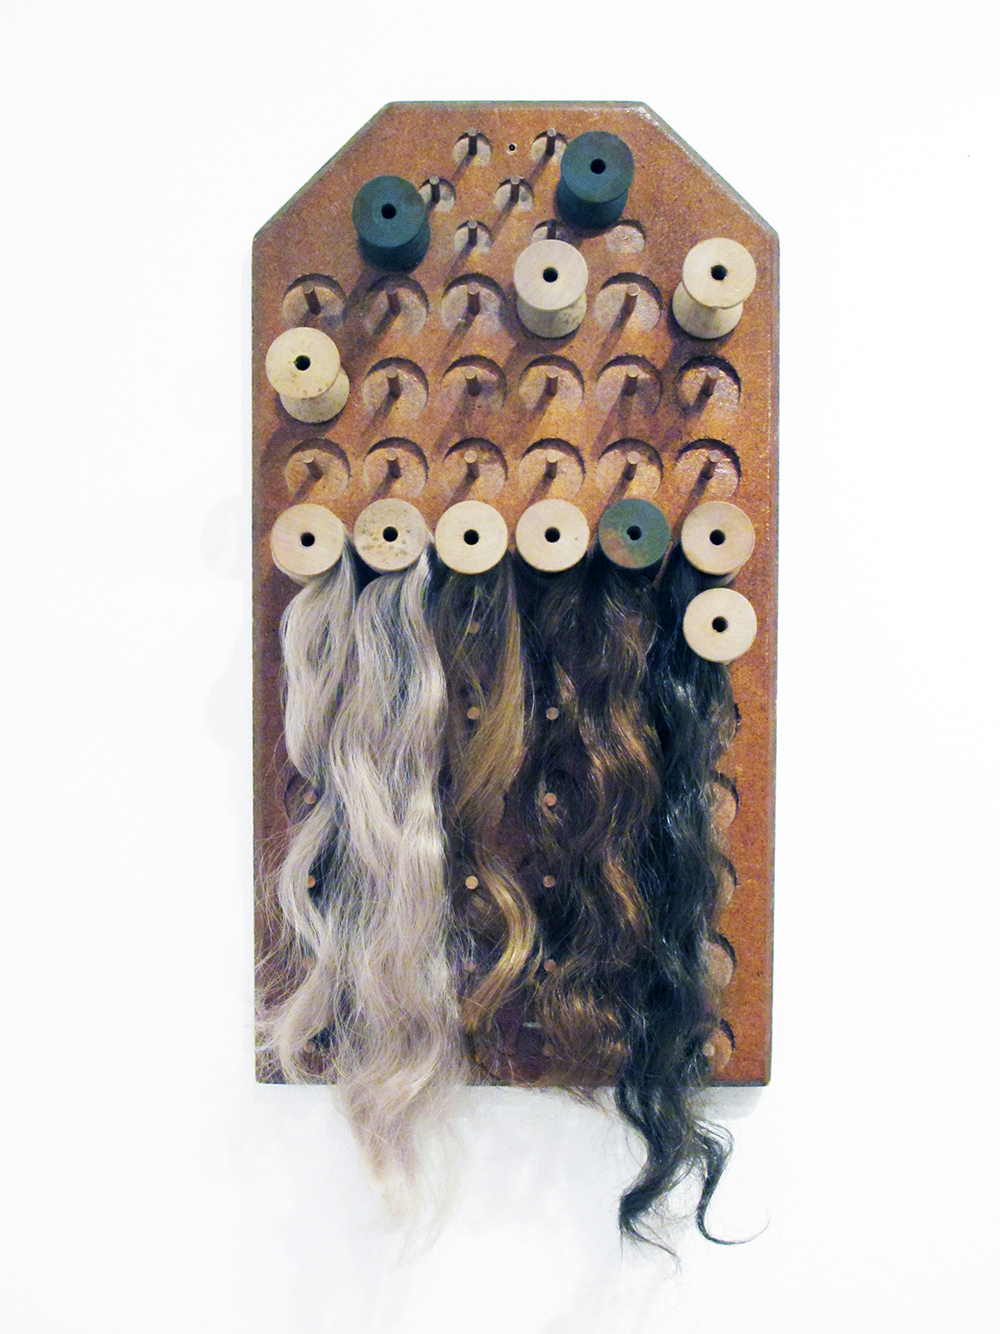 Workshop , 2014 | Human hair & found wood | Private collection